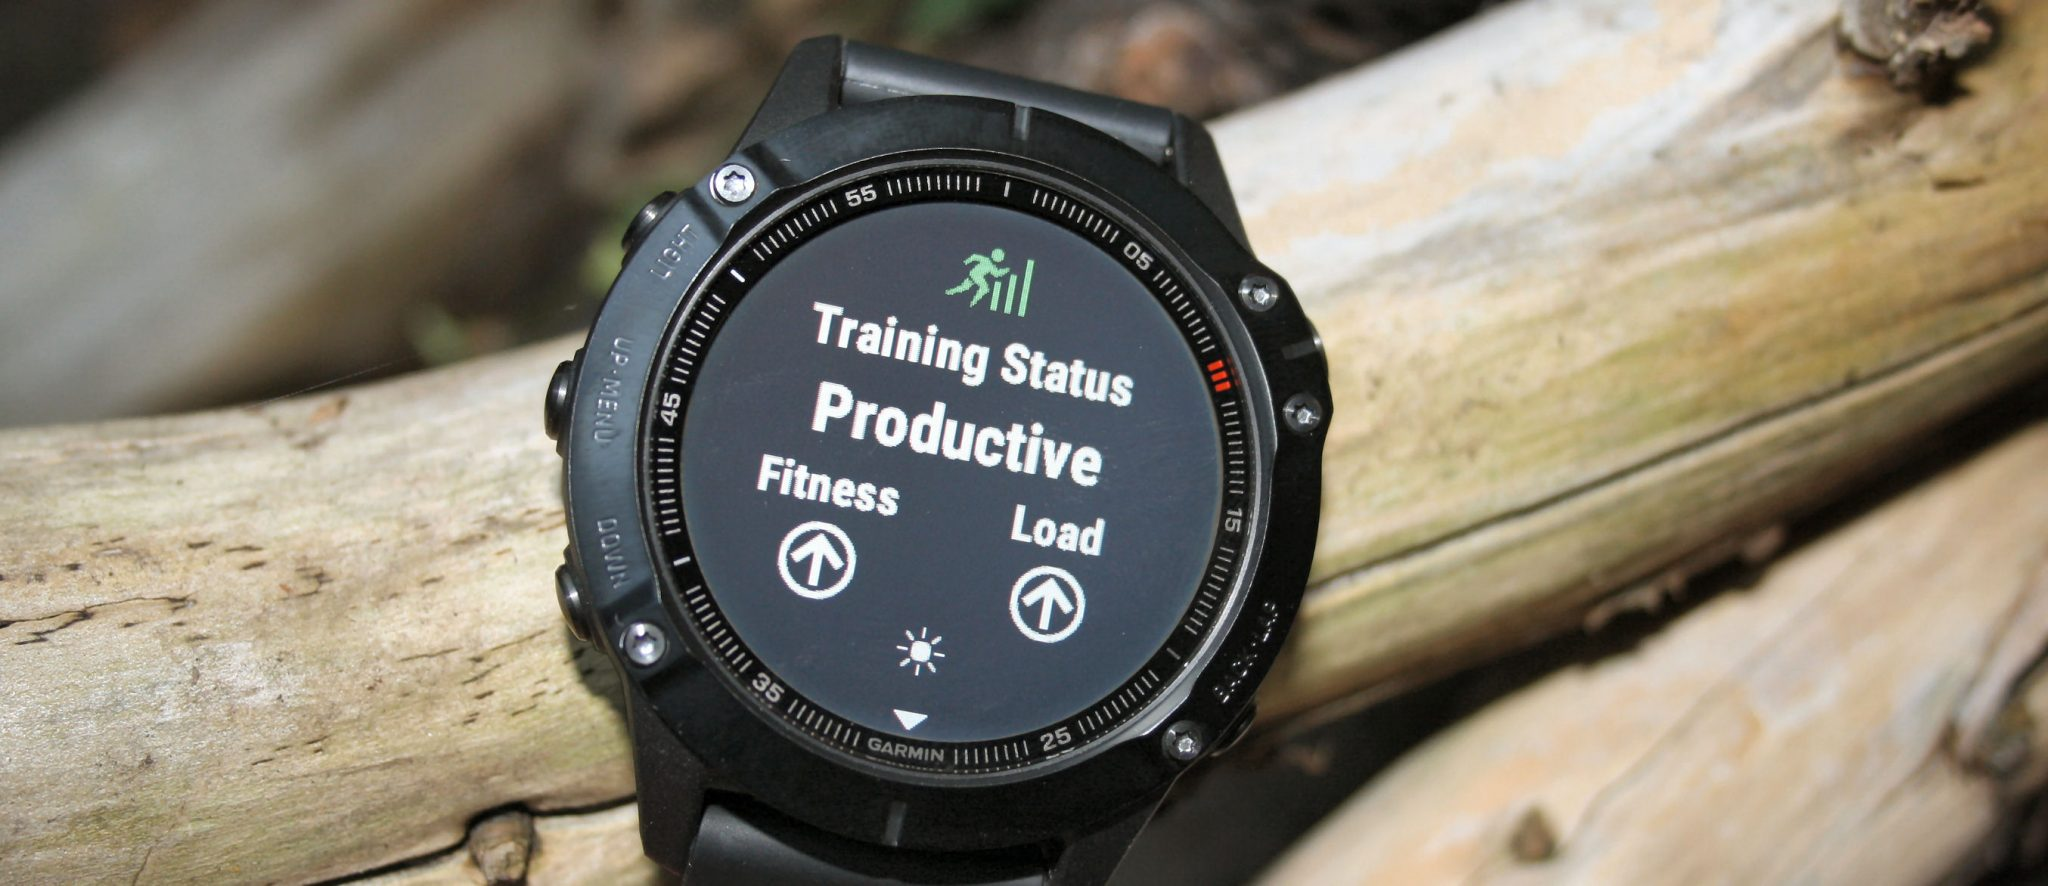 Garmin fenix 6 specifications review acclimation